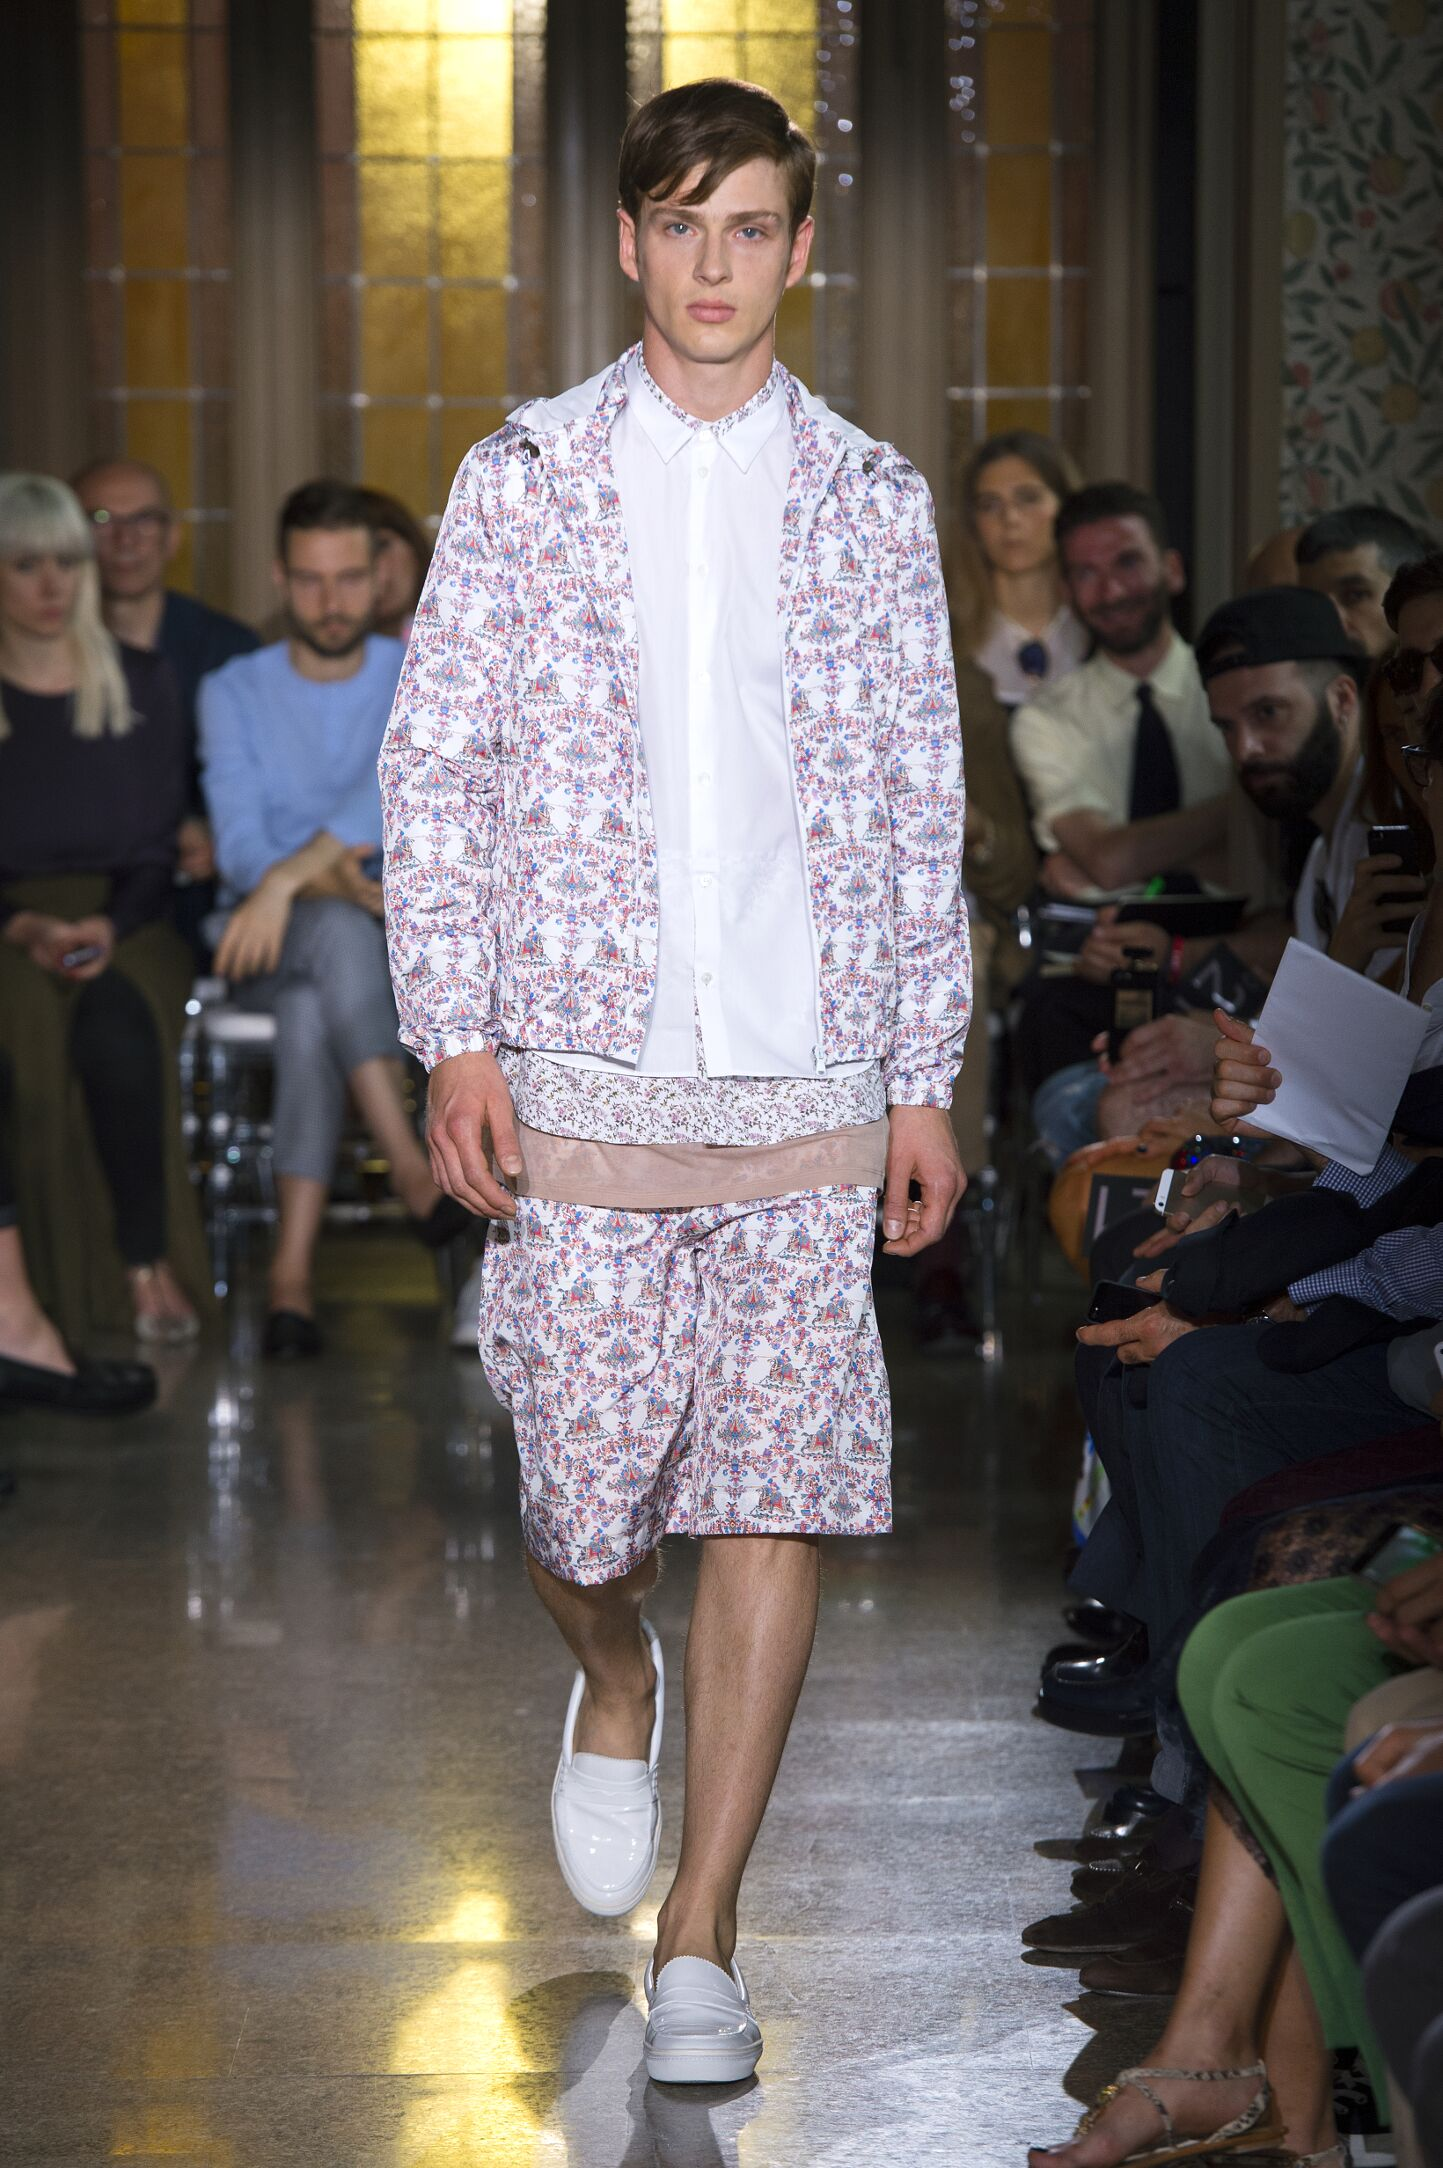 Spring 2015 Man Fashion Show N°21